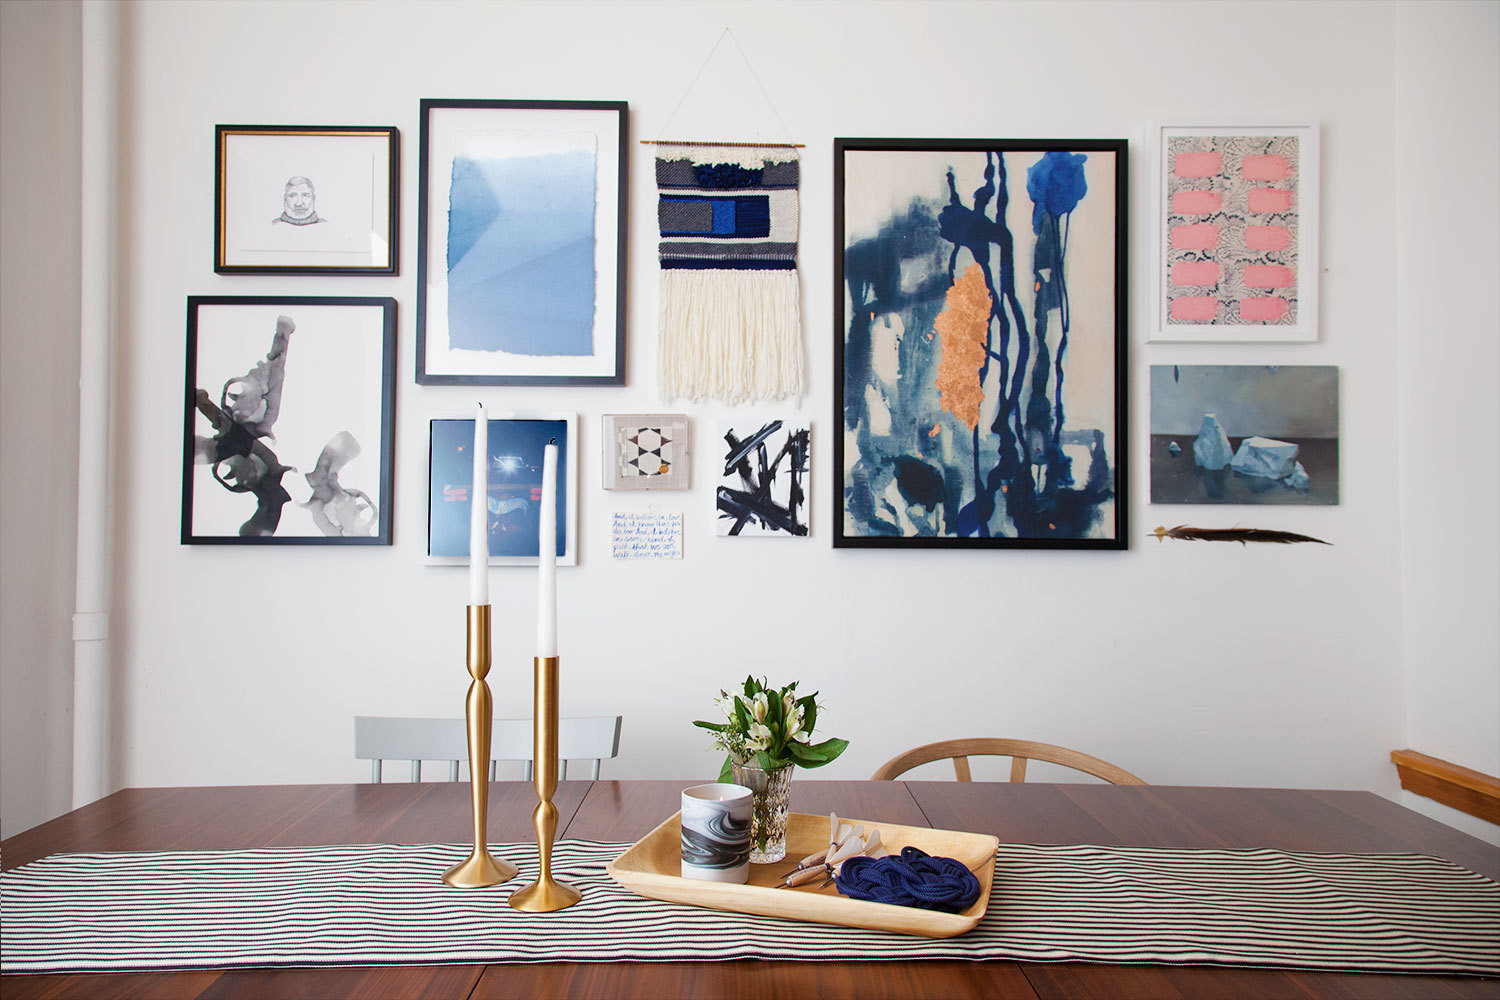 Market editor Cat Dash's dining room revamp; a set of Calvin Klein candlesticks sits on a Loom Decor striped runner.